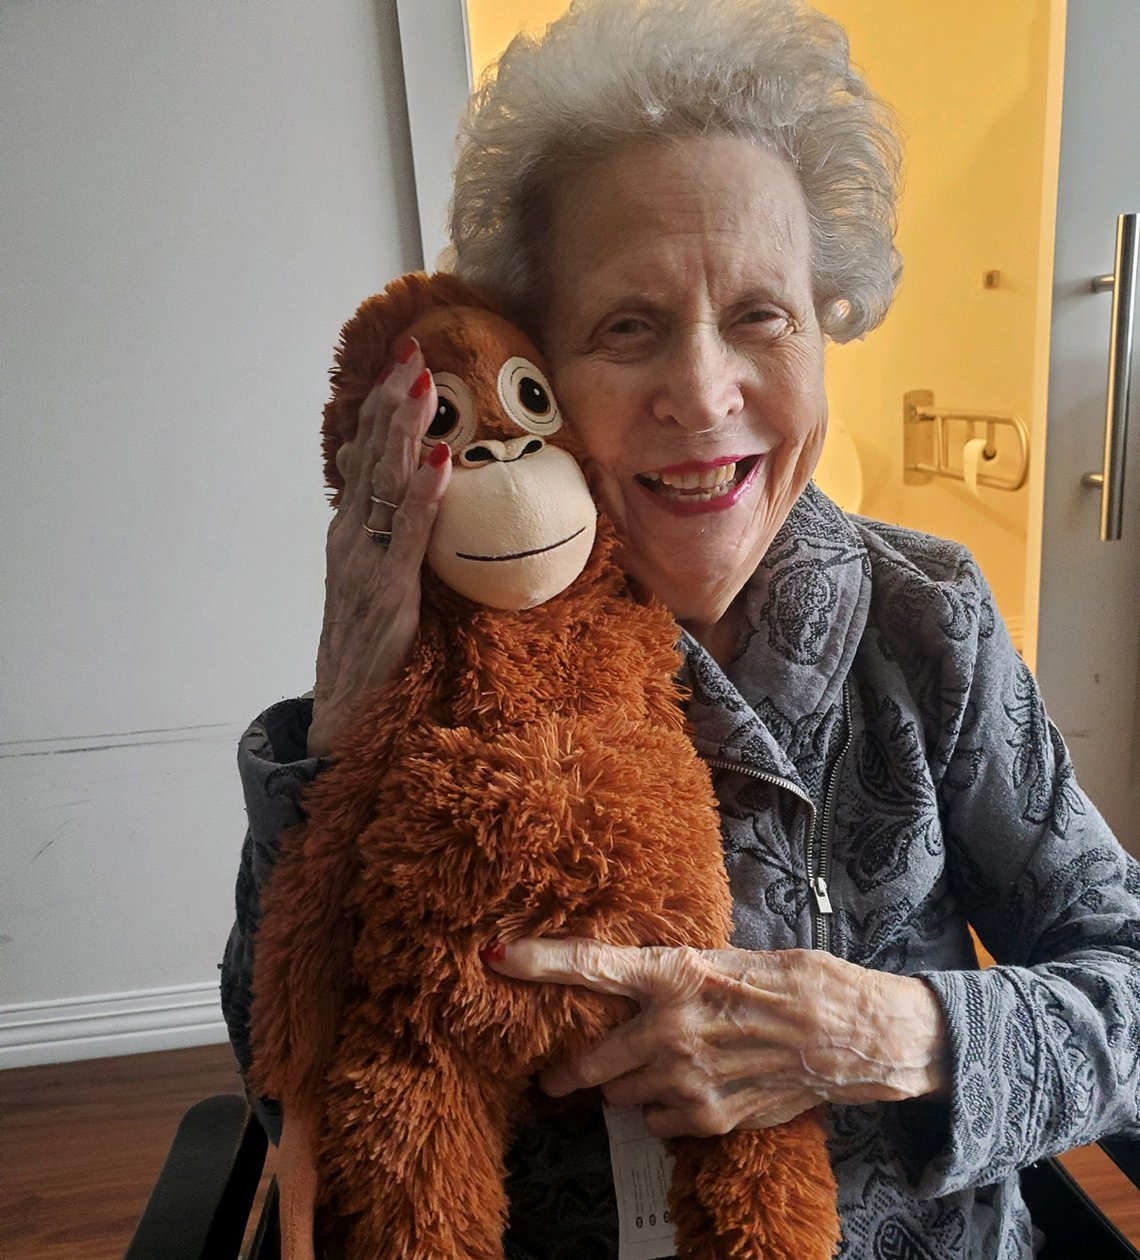 Wilma holding  a stuffed animal monkey